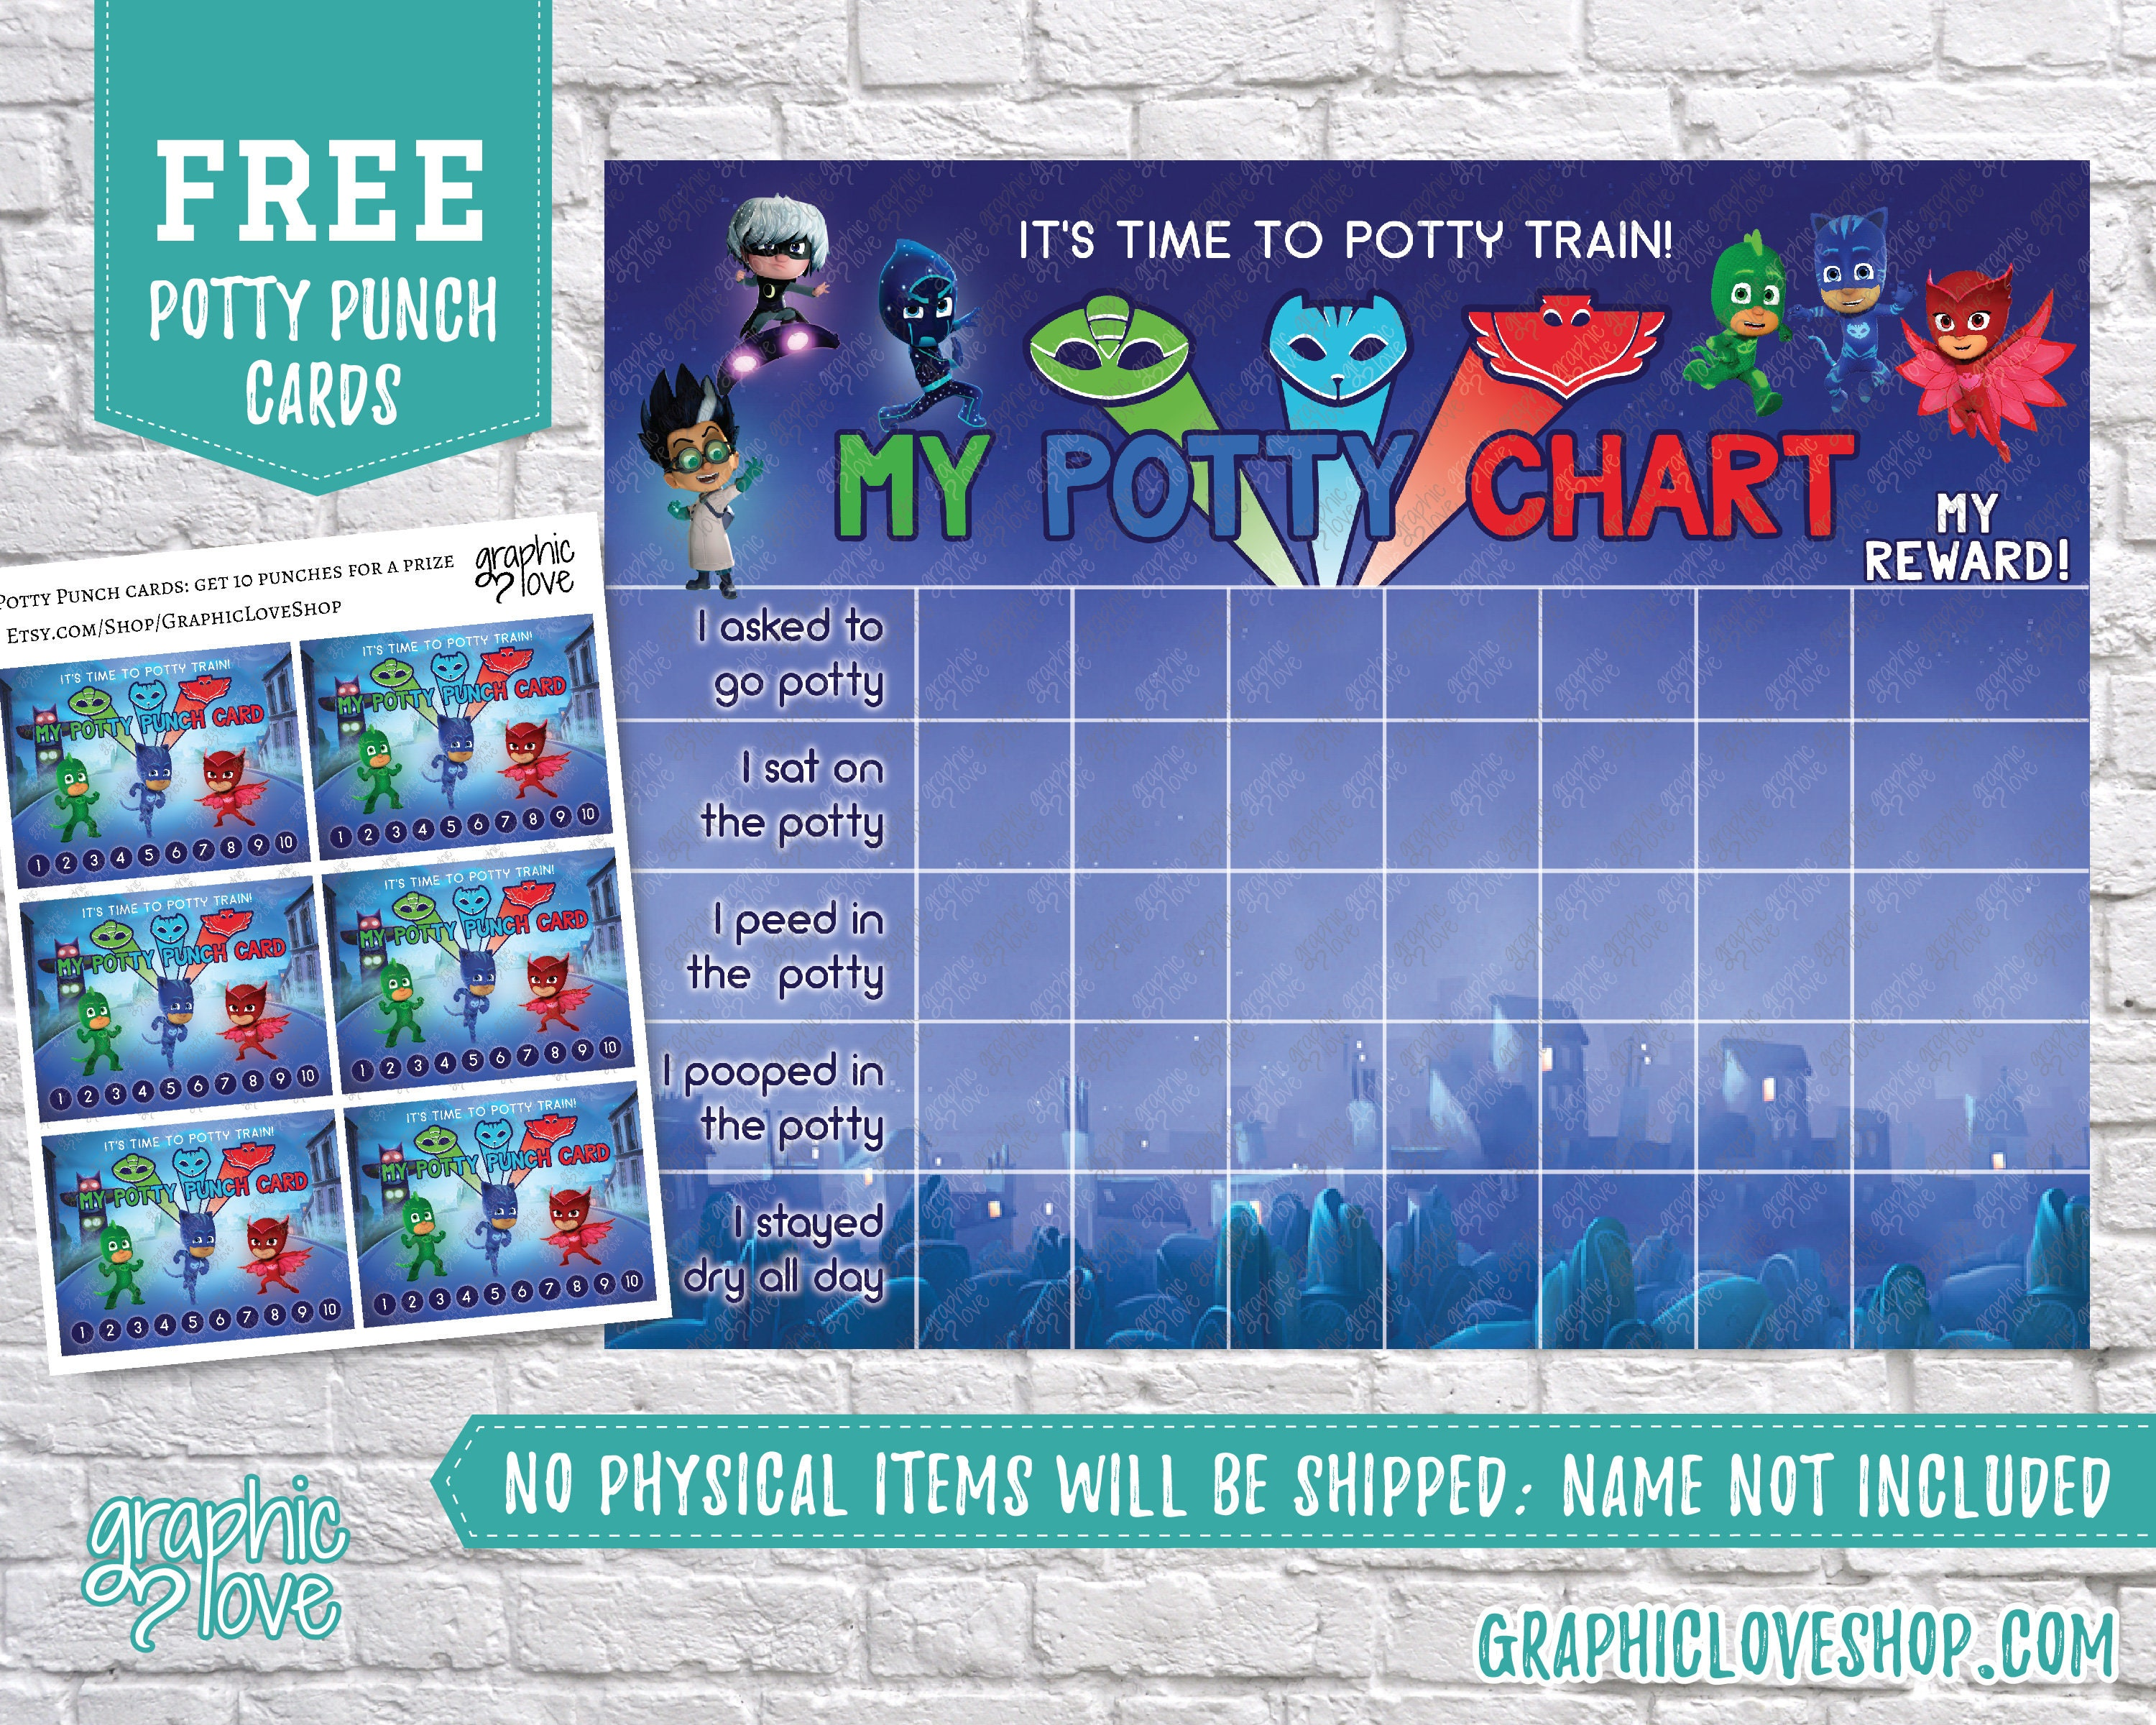 picture regarding Free Printable Potty Training Chart called Electronic Pj Masks, Disney Junior Potty Performing exercises Chart, Cost-free